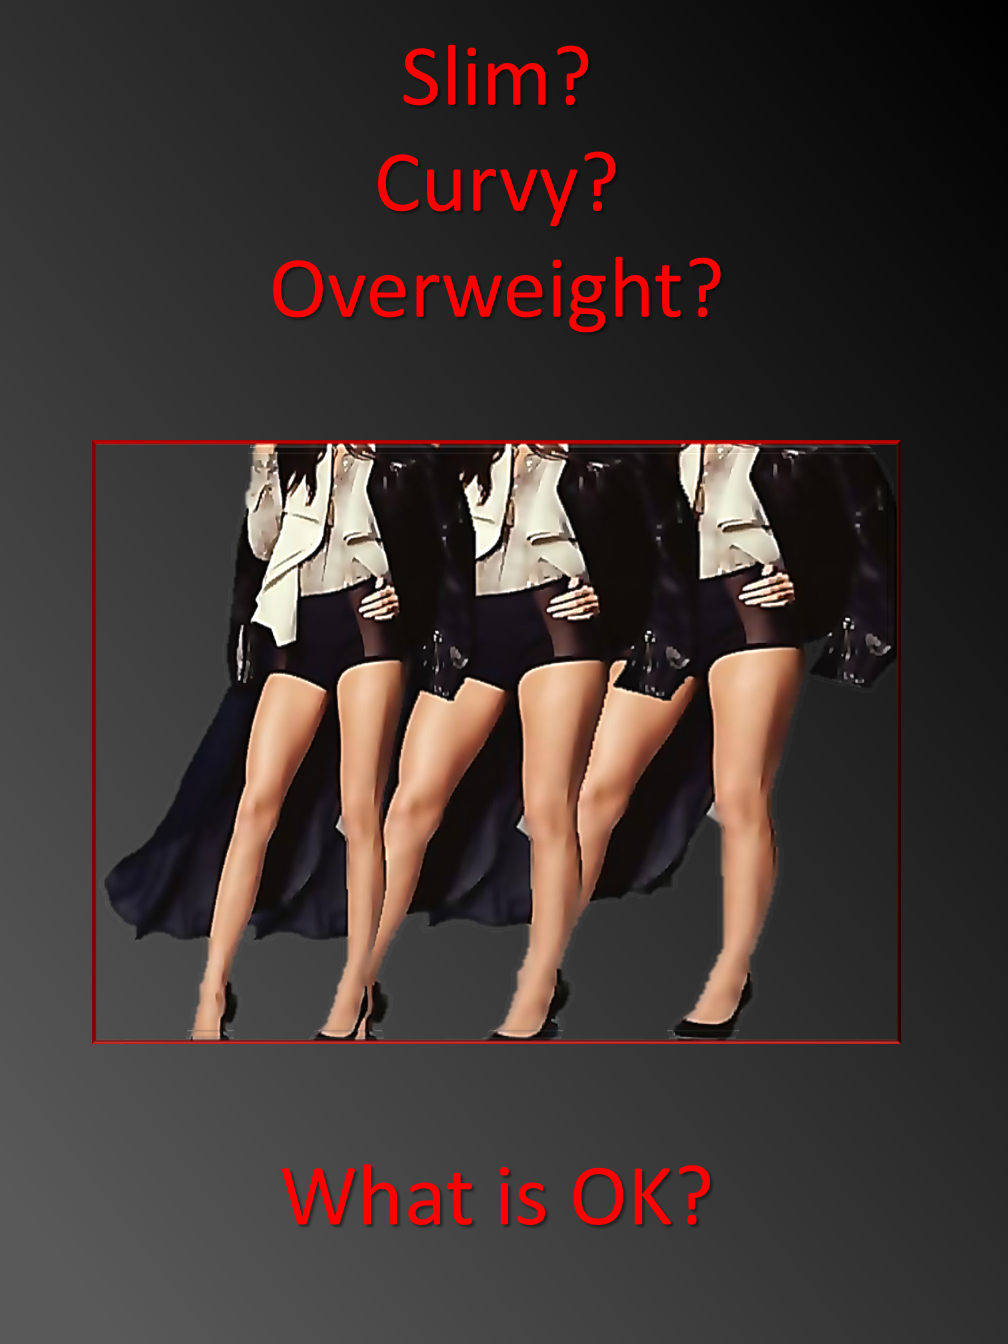 Slim, Curvy or Overweight?